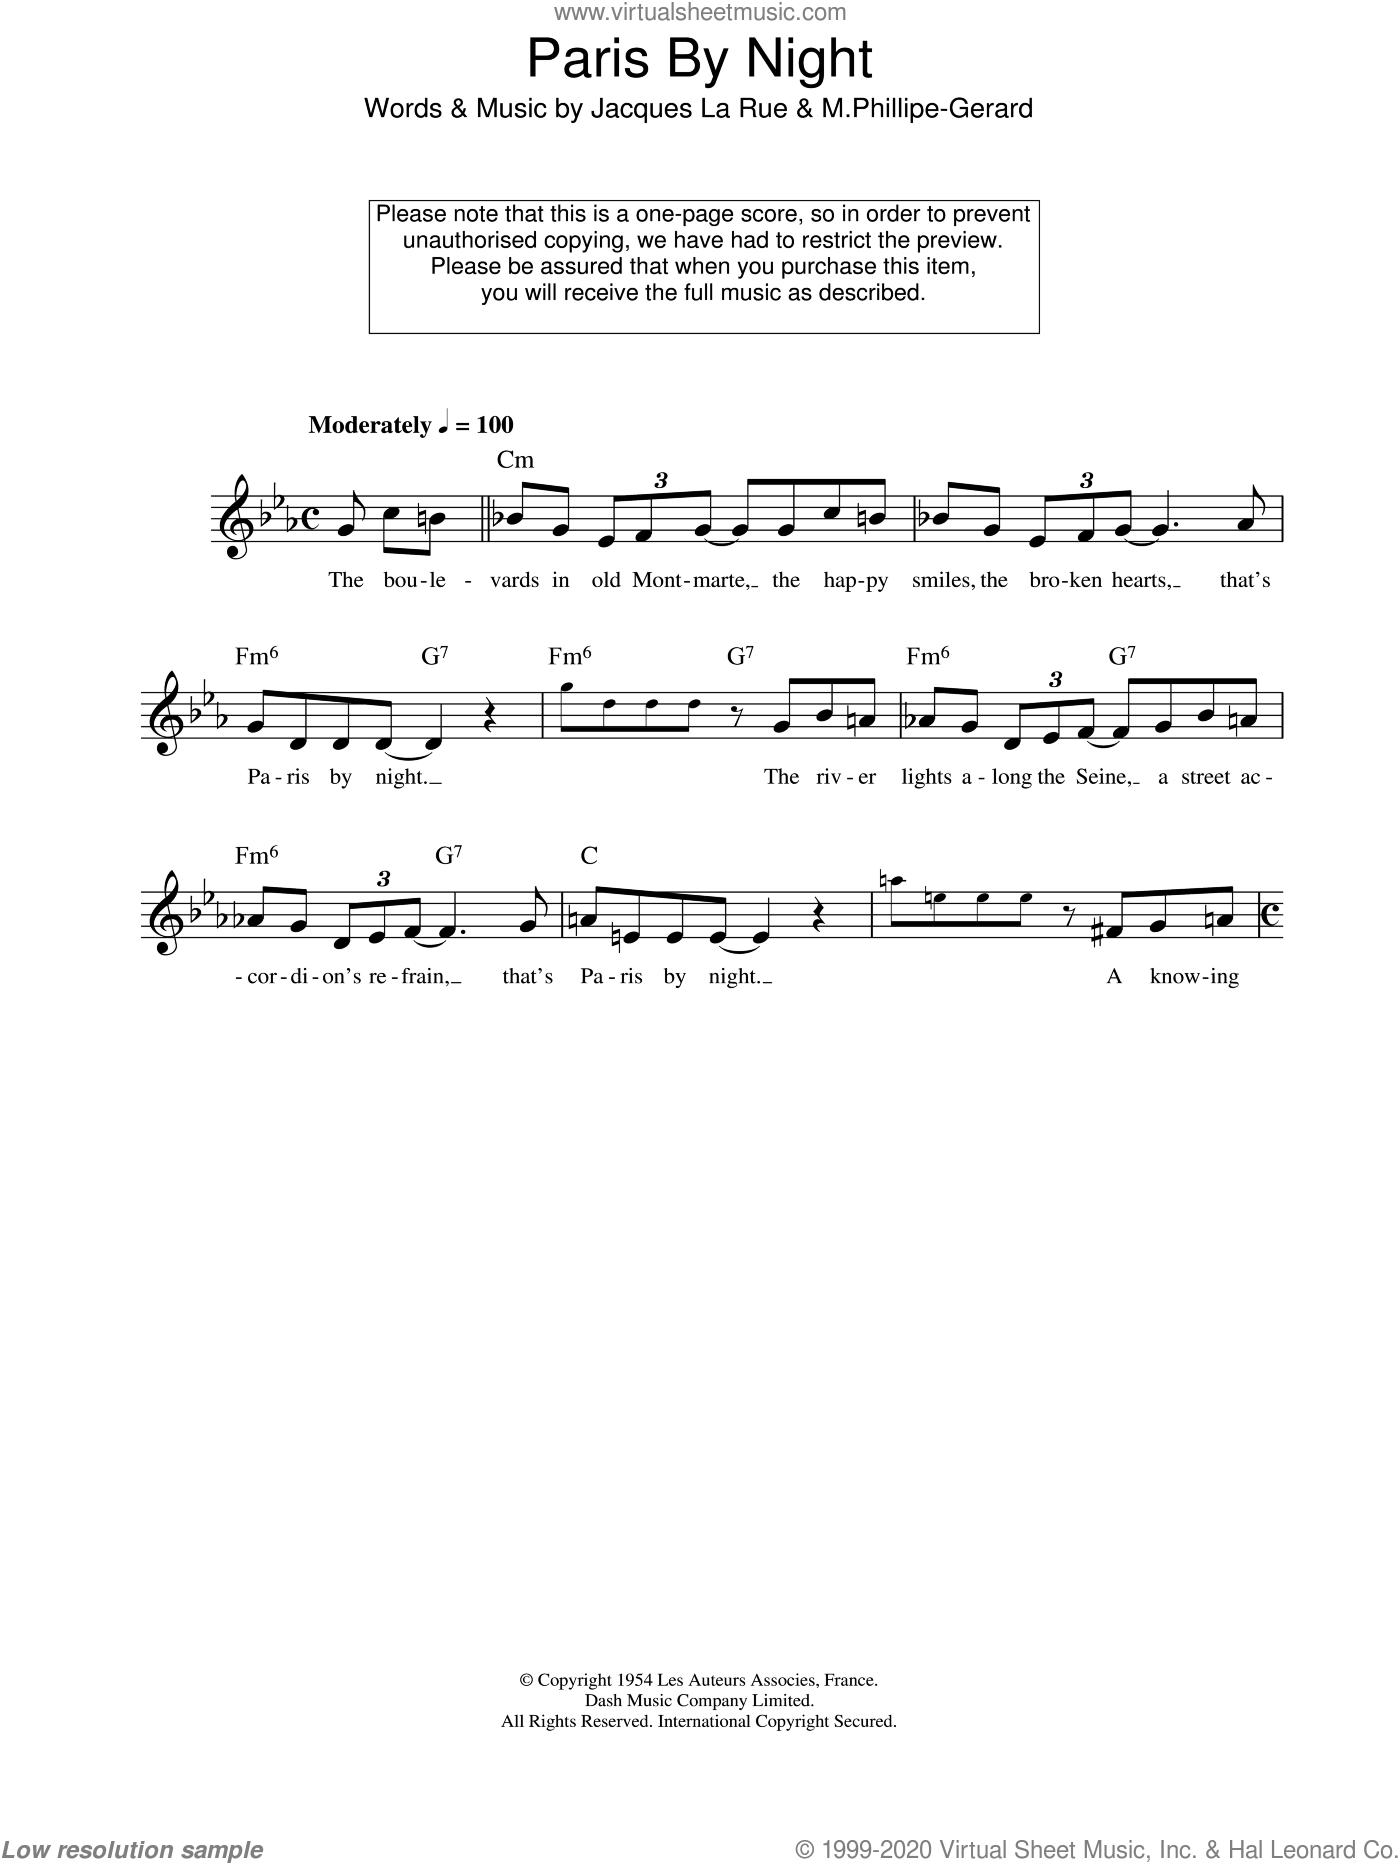 Paris By Night sheet music for voice and other instruments (fake book) by Jacques La Rue and M.Phillipe-Gerard, intermediate skill level